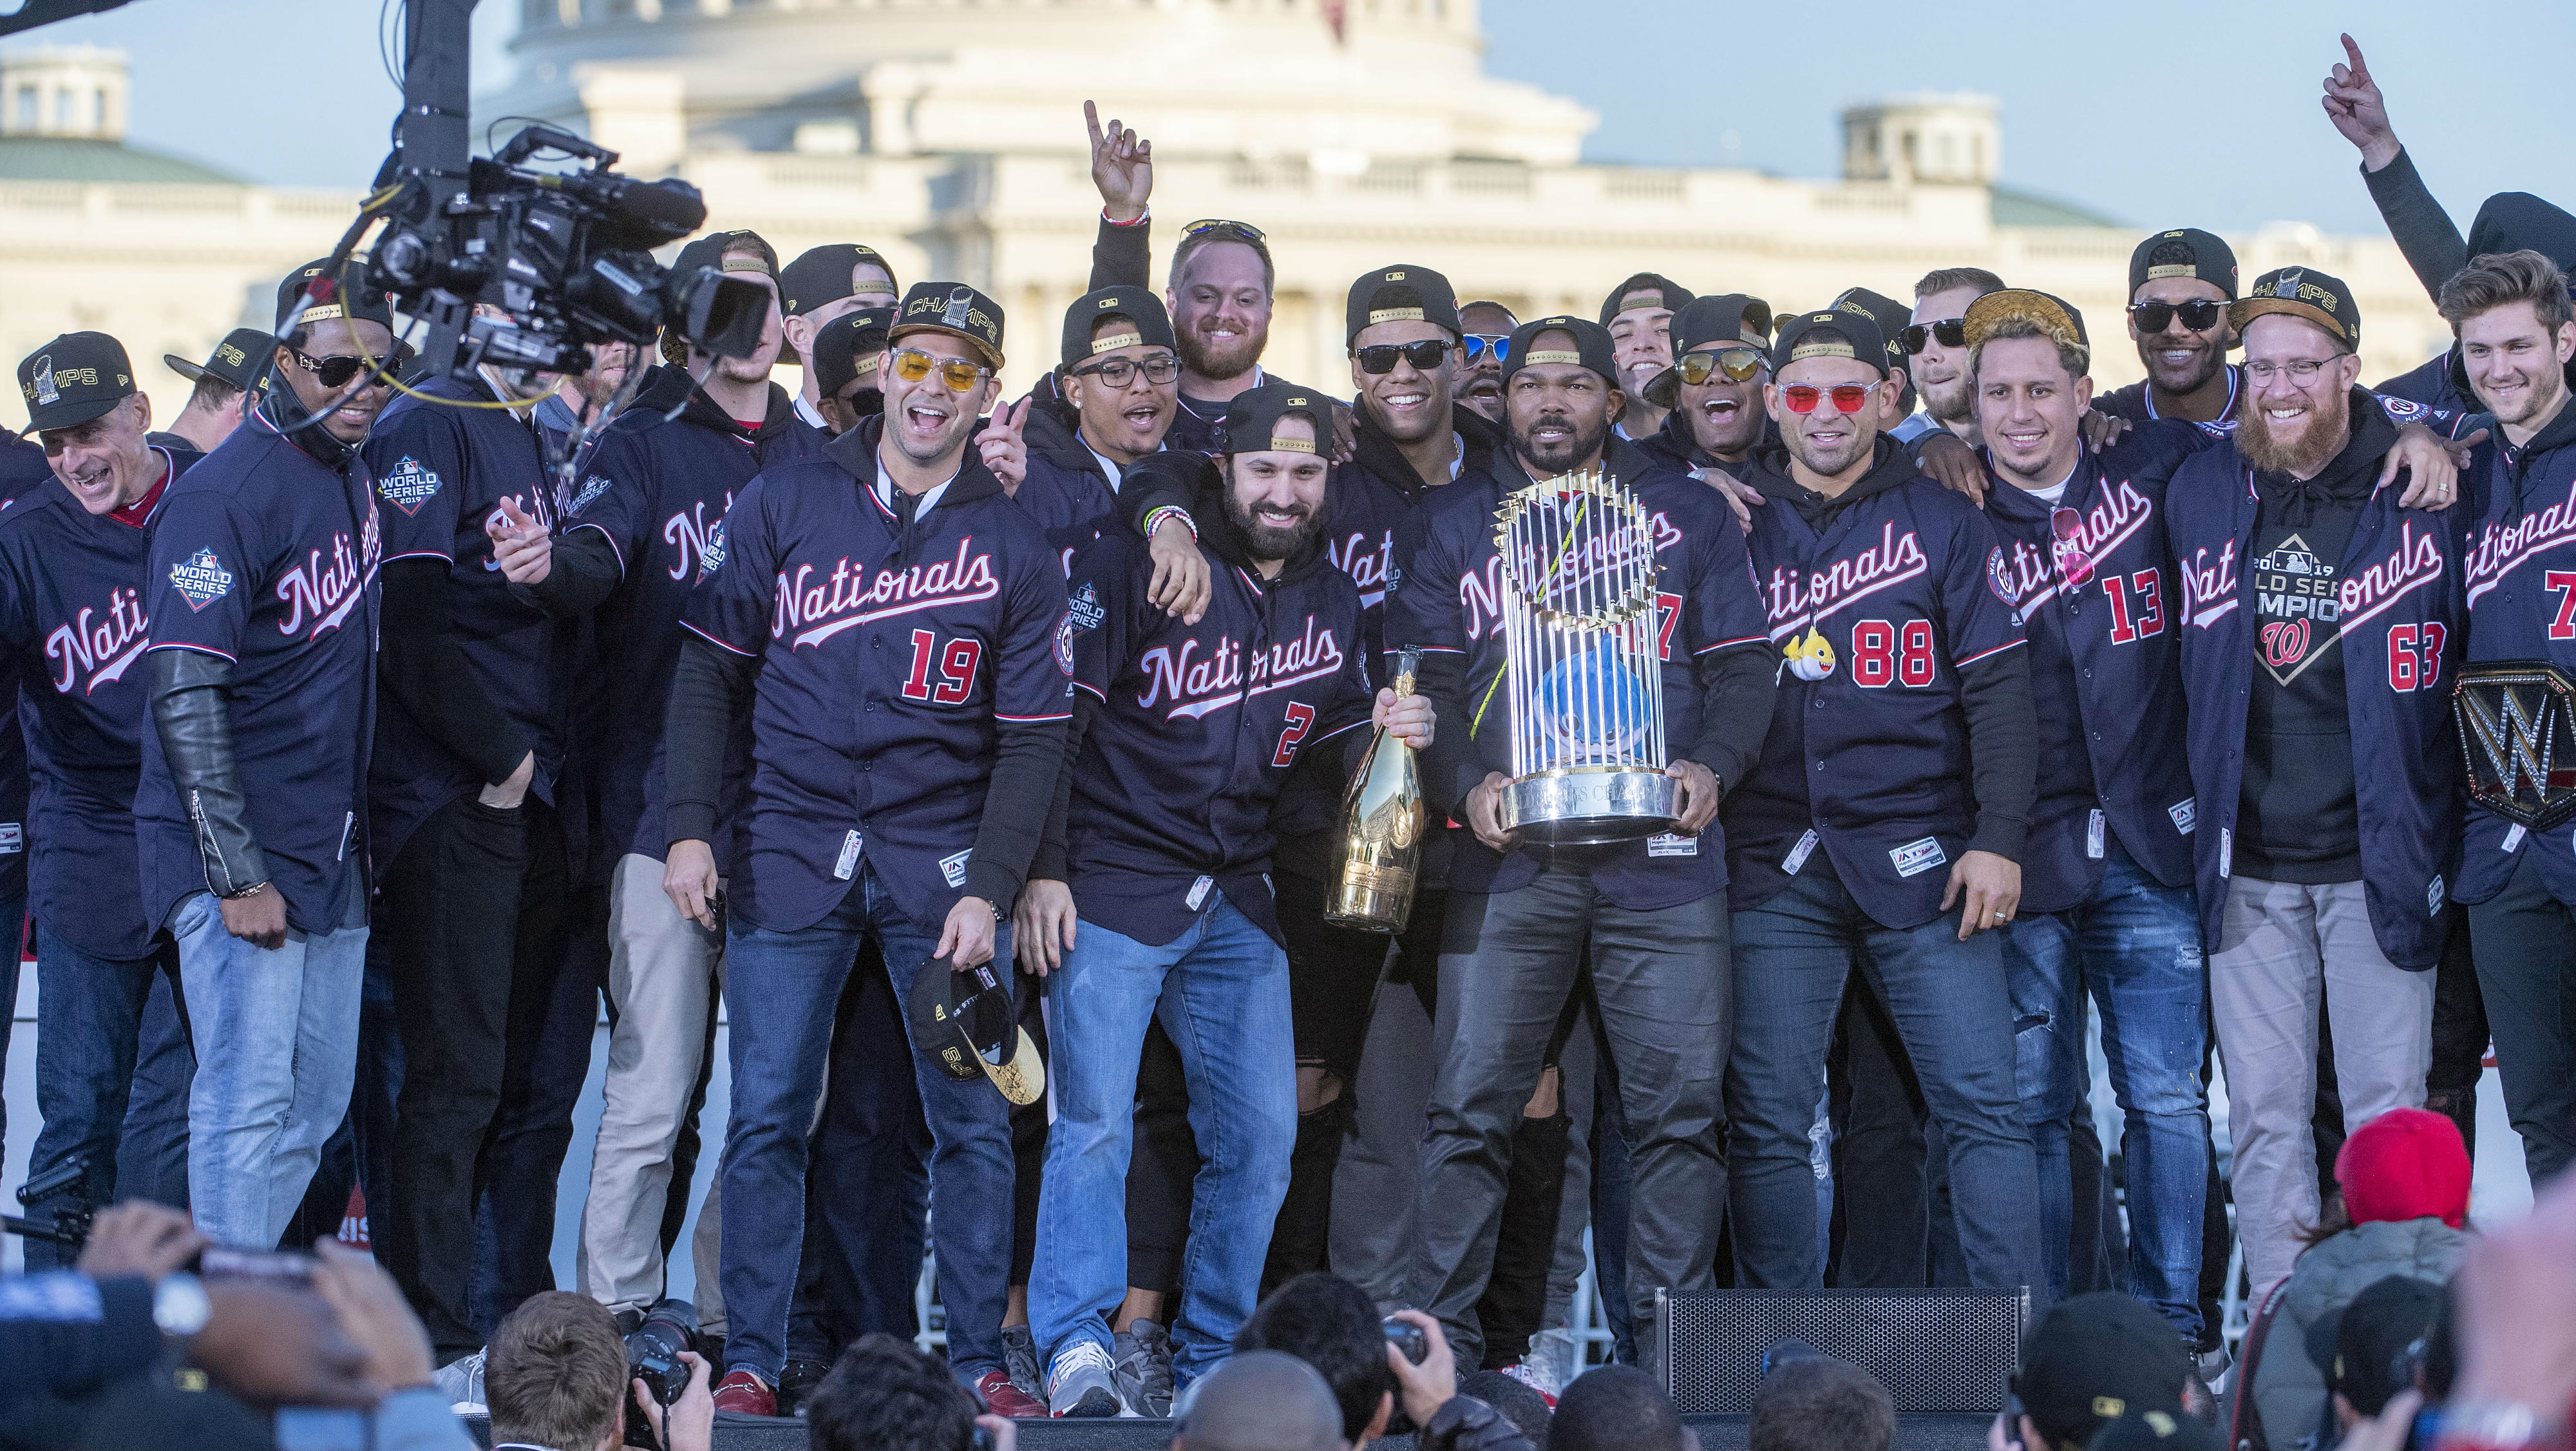 'this Bud's For The District': Budweiser Creates Ad Celebrating Nats' photo